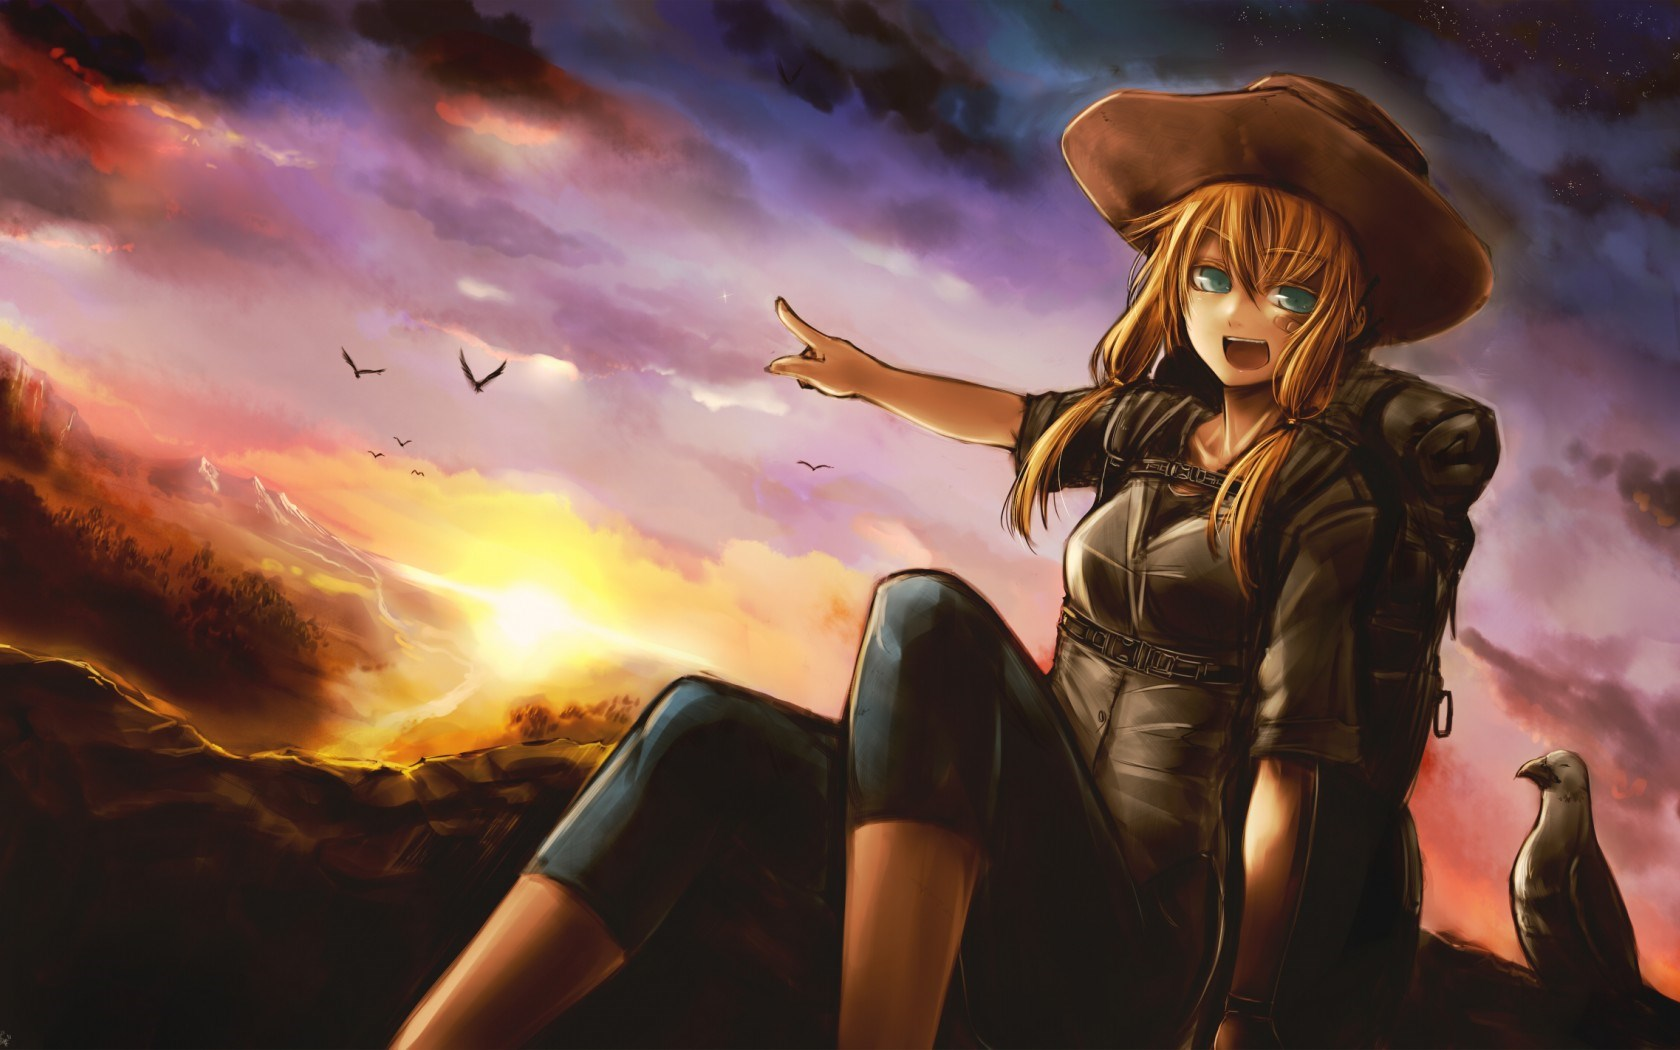 Art Girl Sunset Anime